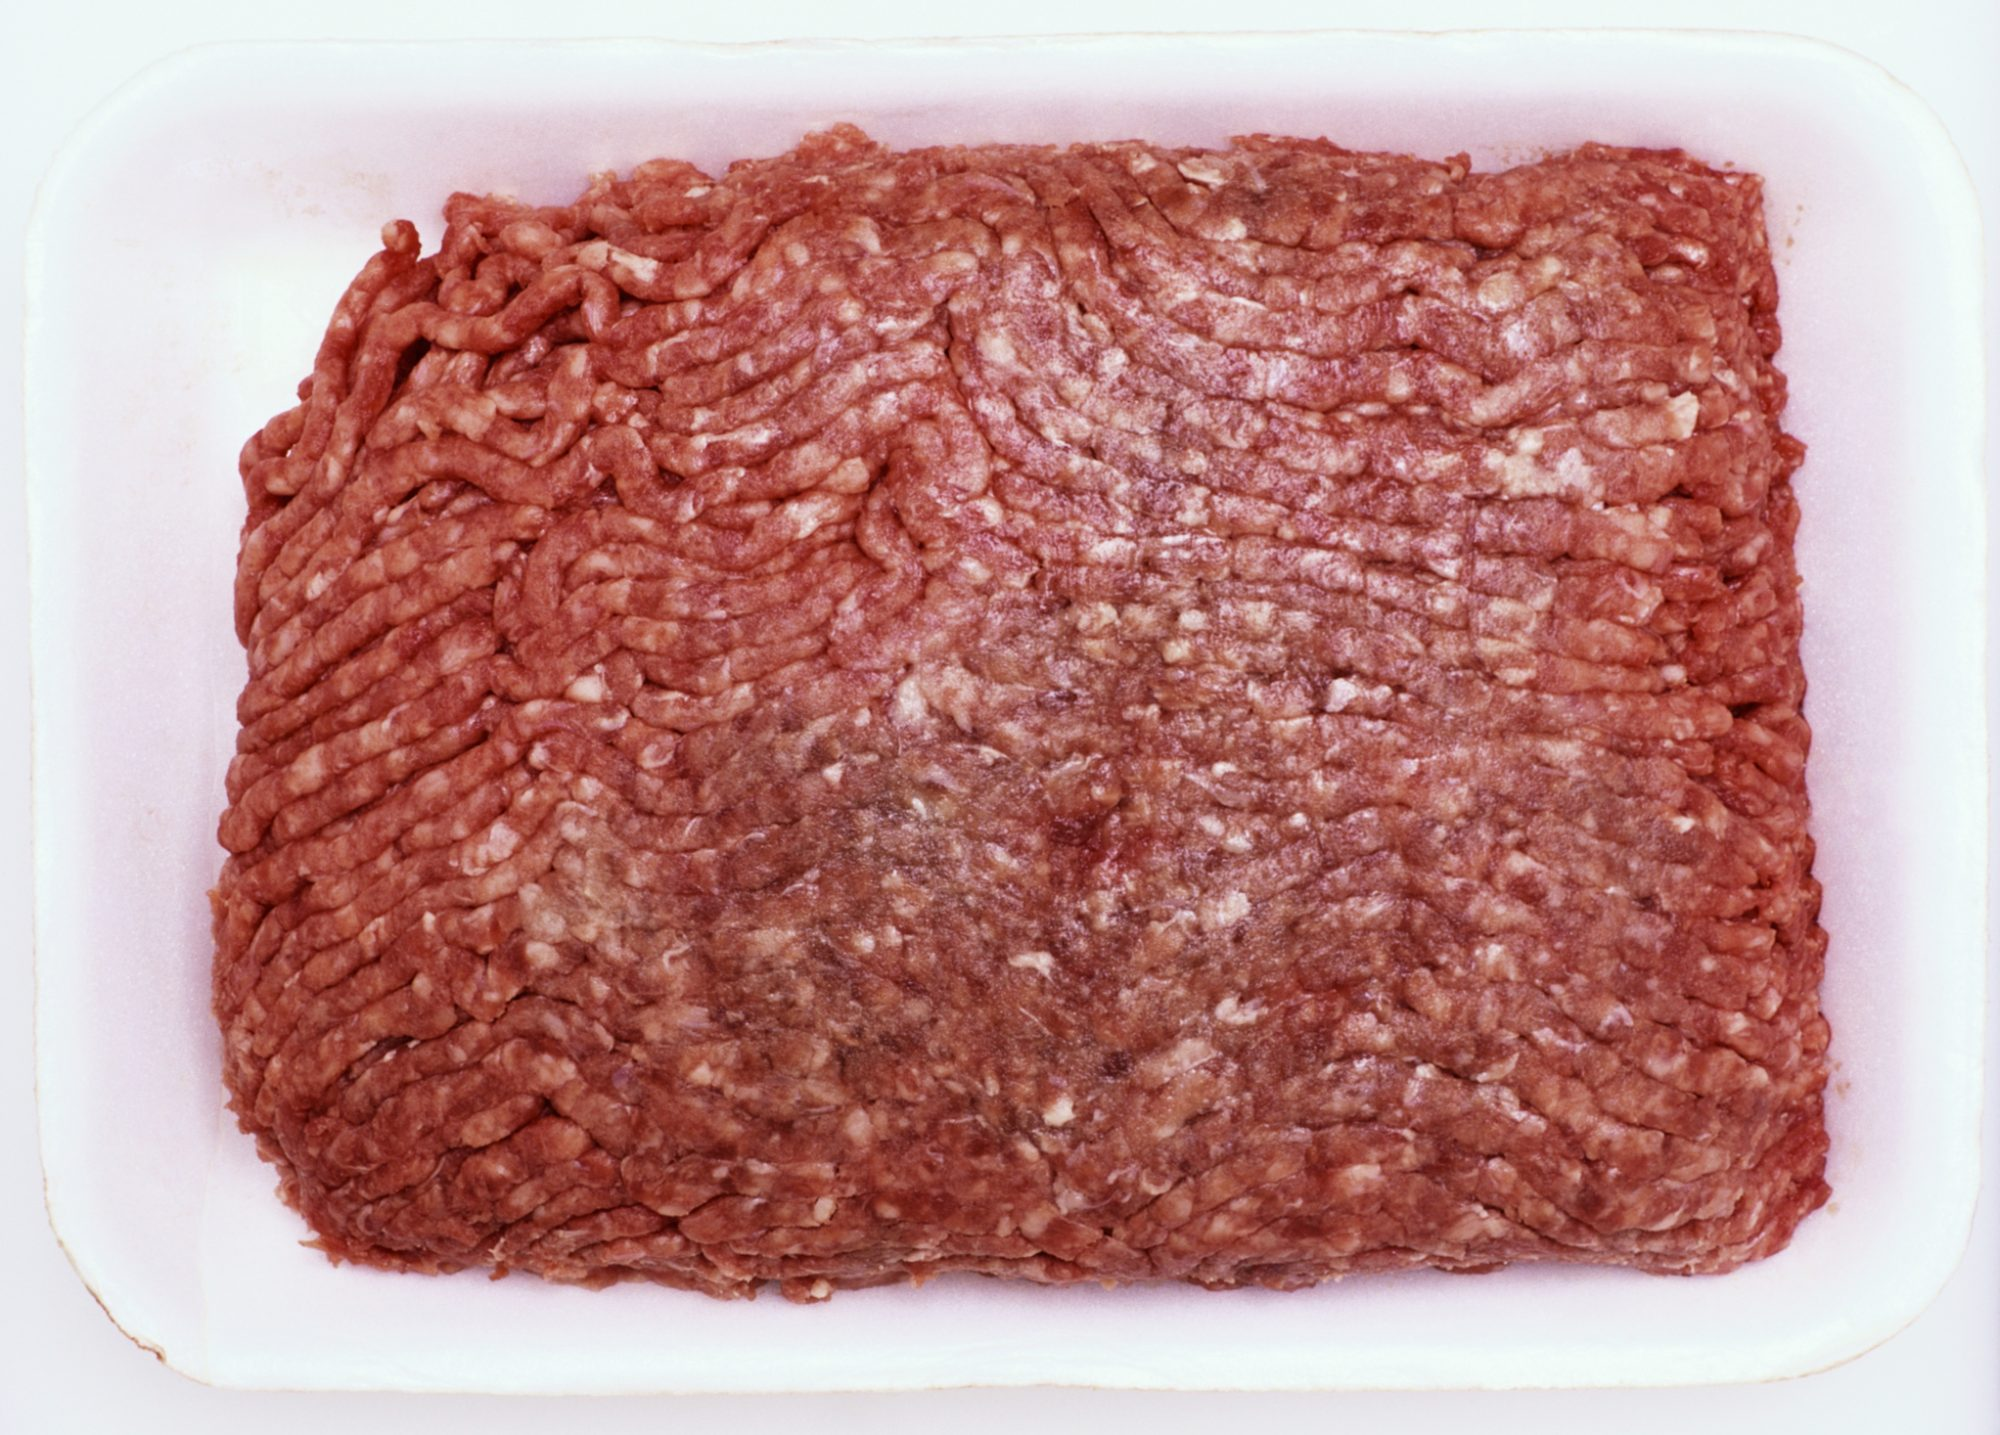 Is My Ground Beef Still Safe to Eat if It Has Changed Color